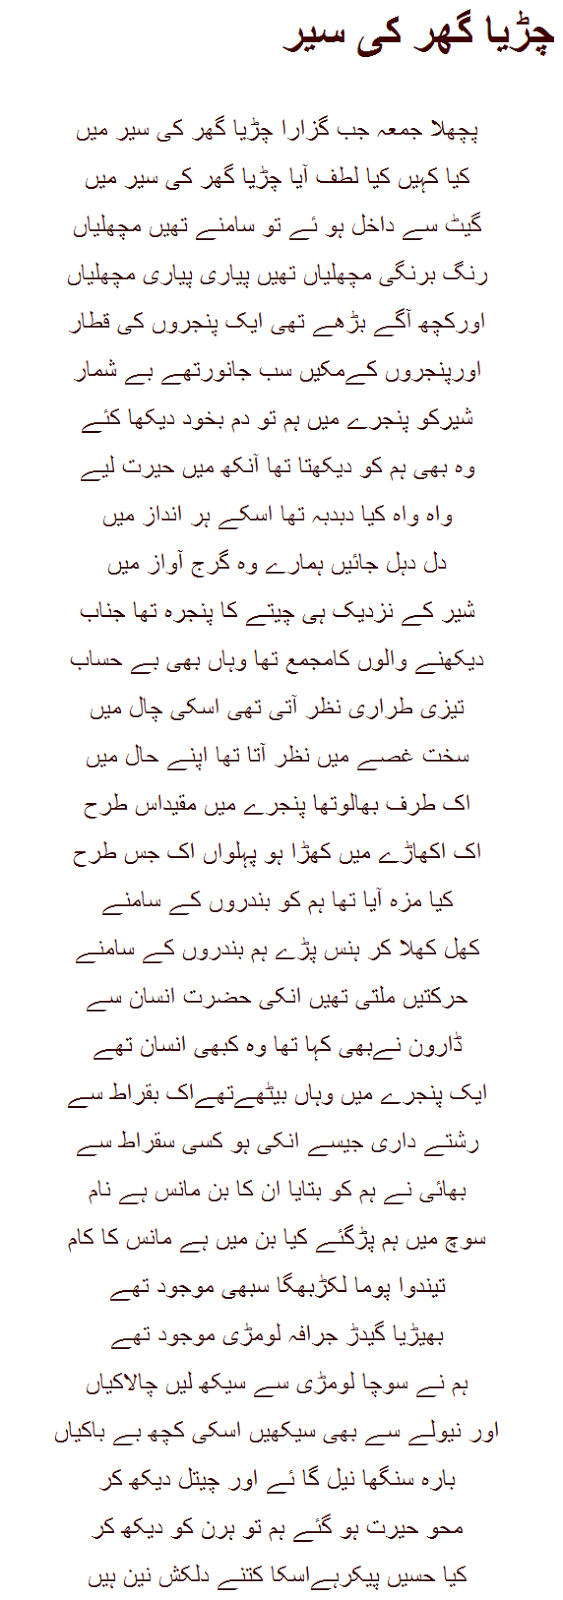 On holiday essay zoo in urdu